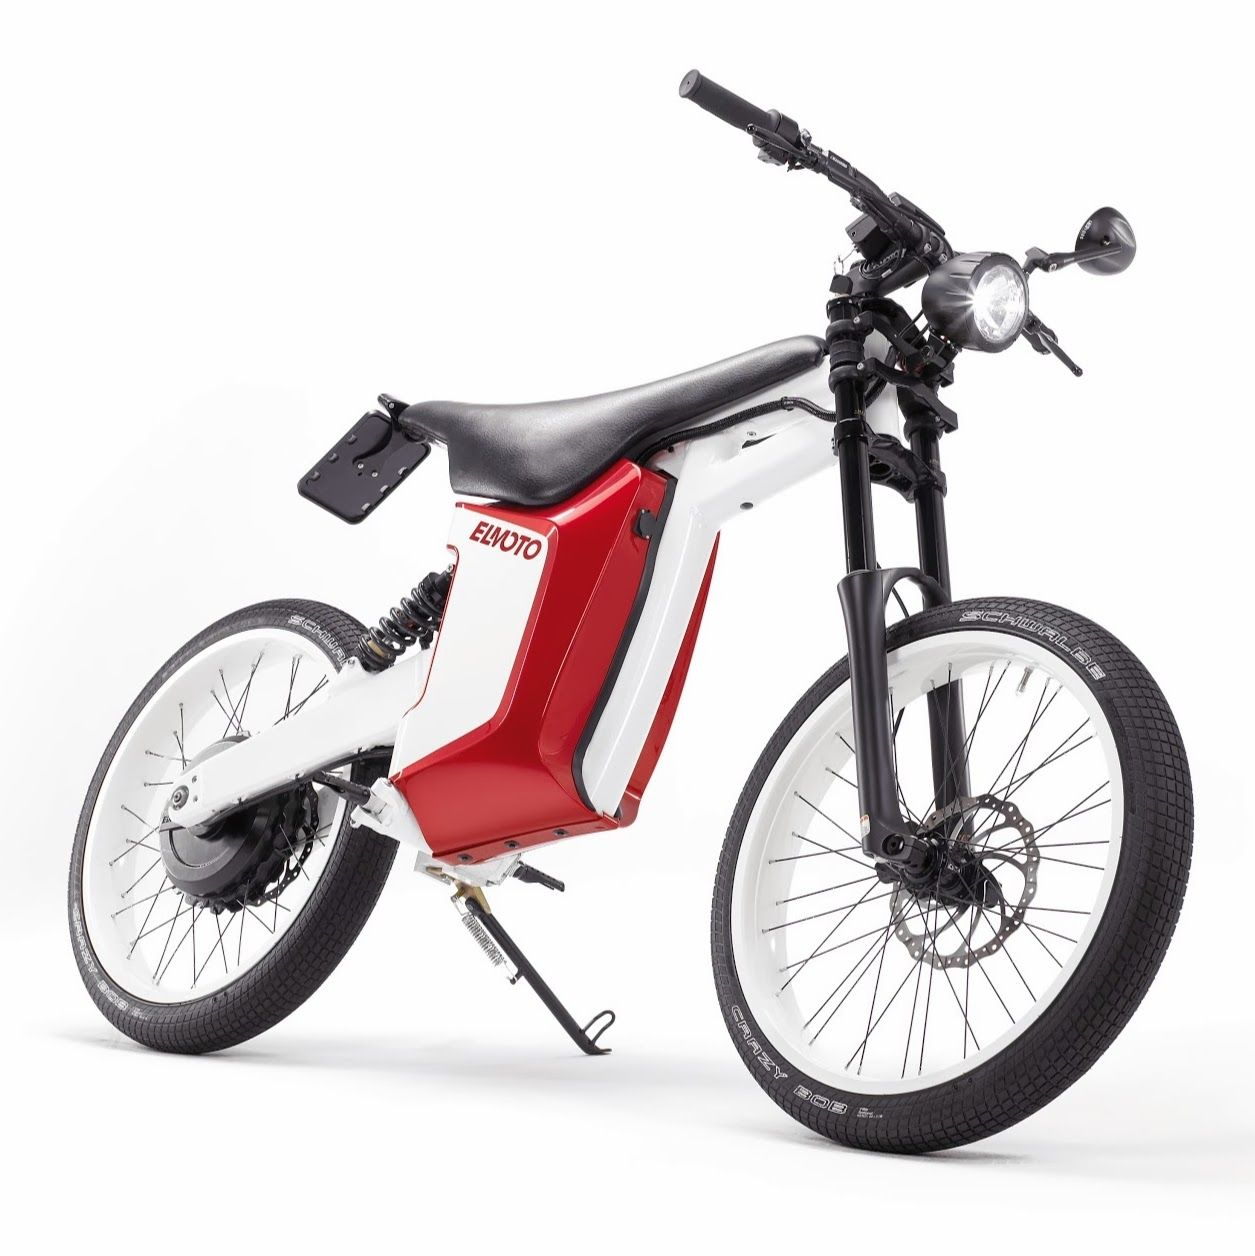 Pin By Ms On Cool Electric Vehicles Electric Moped